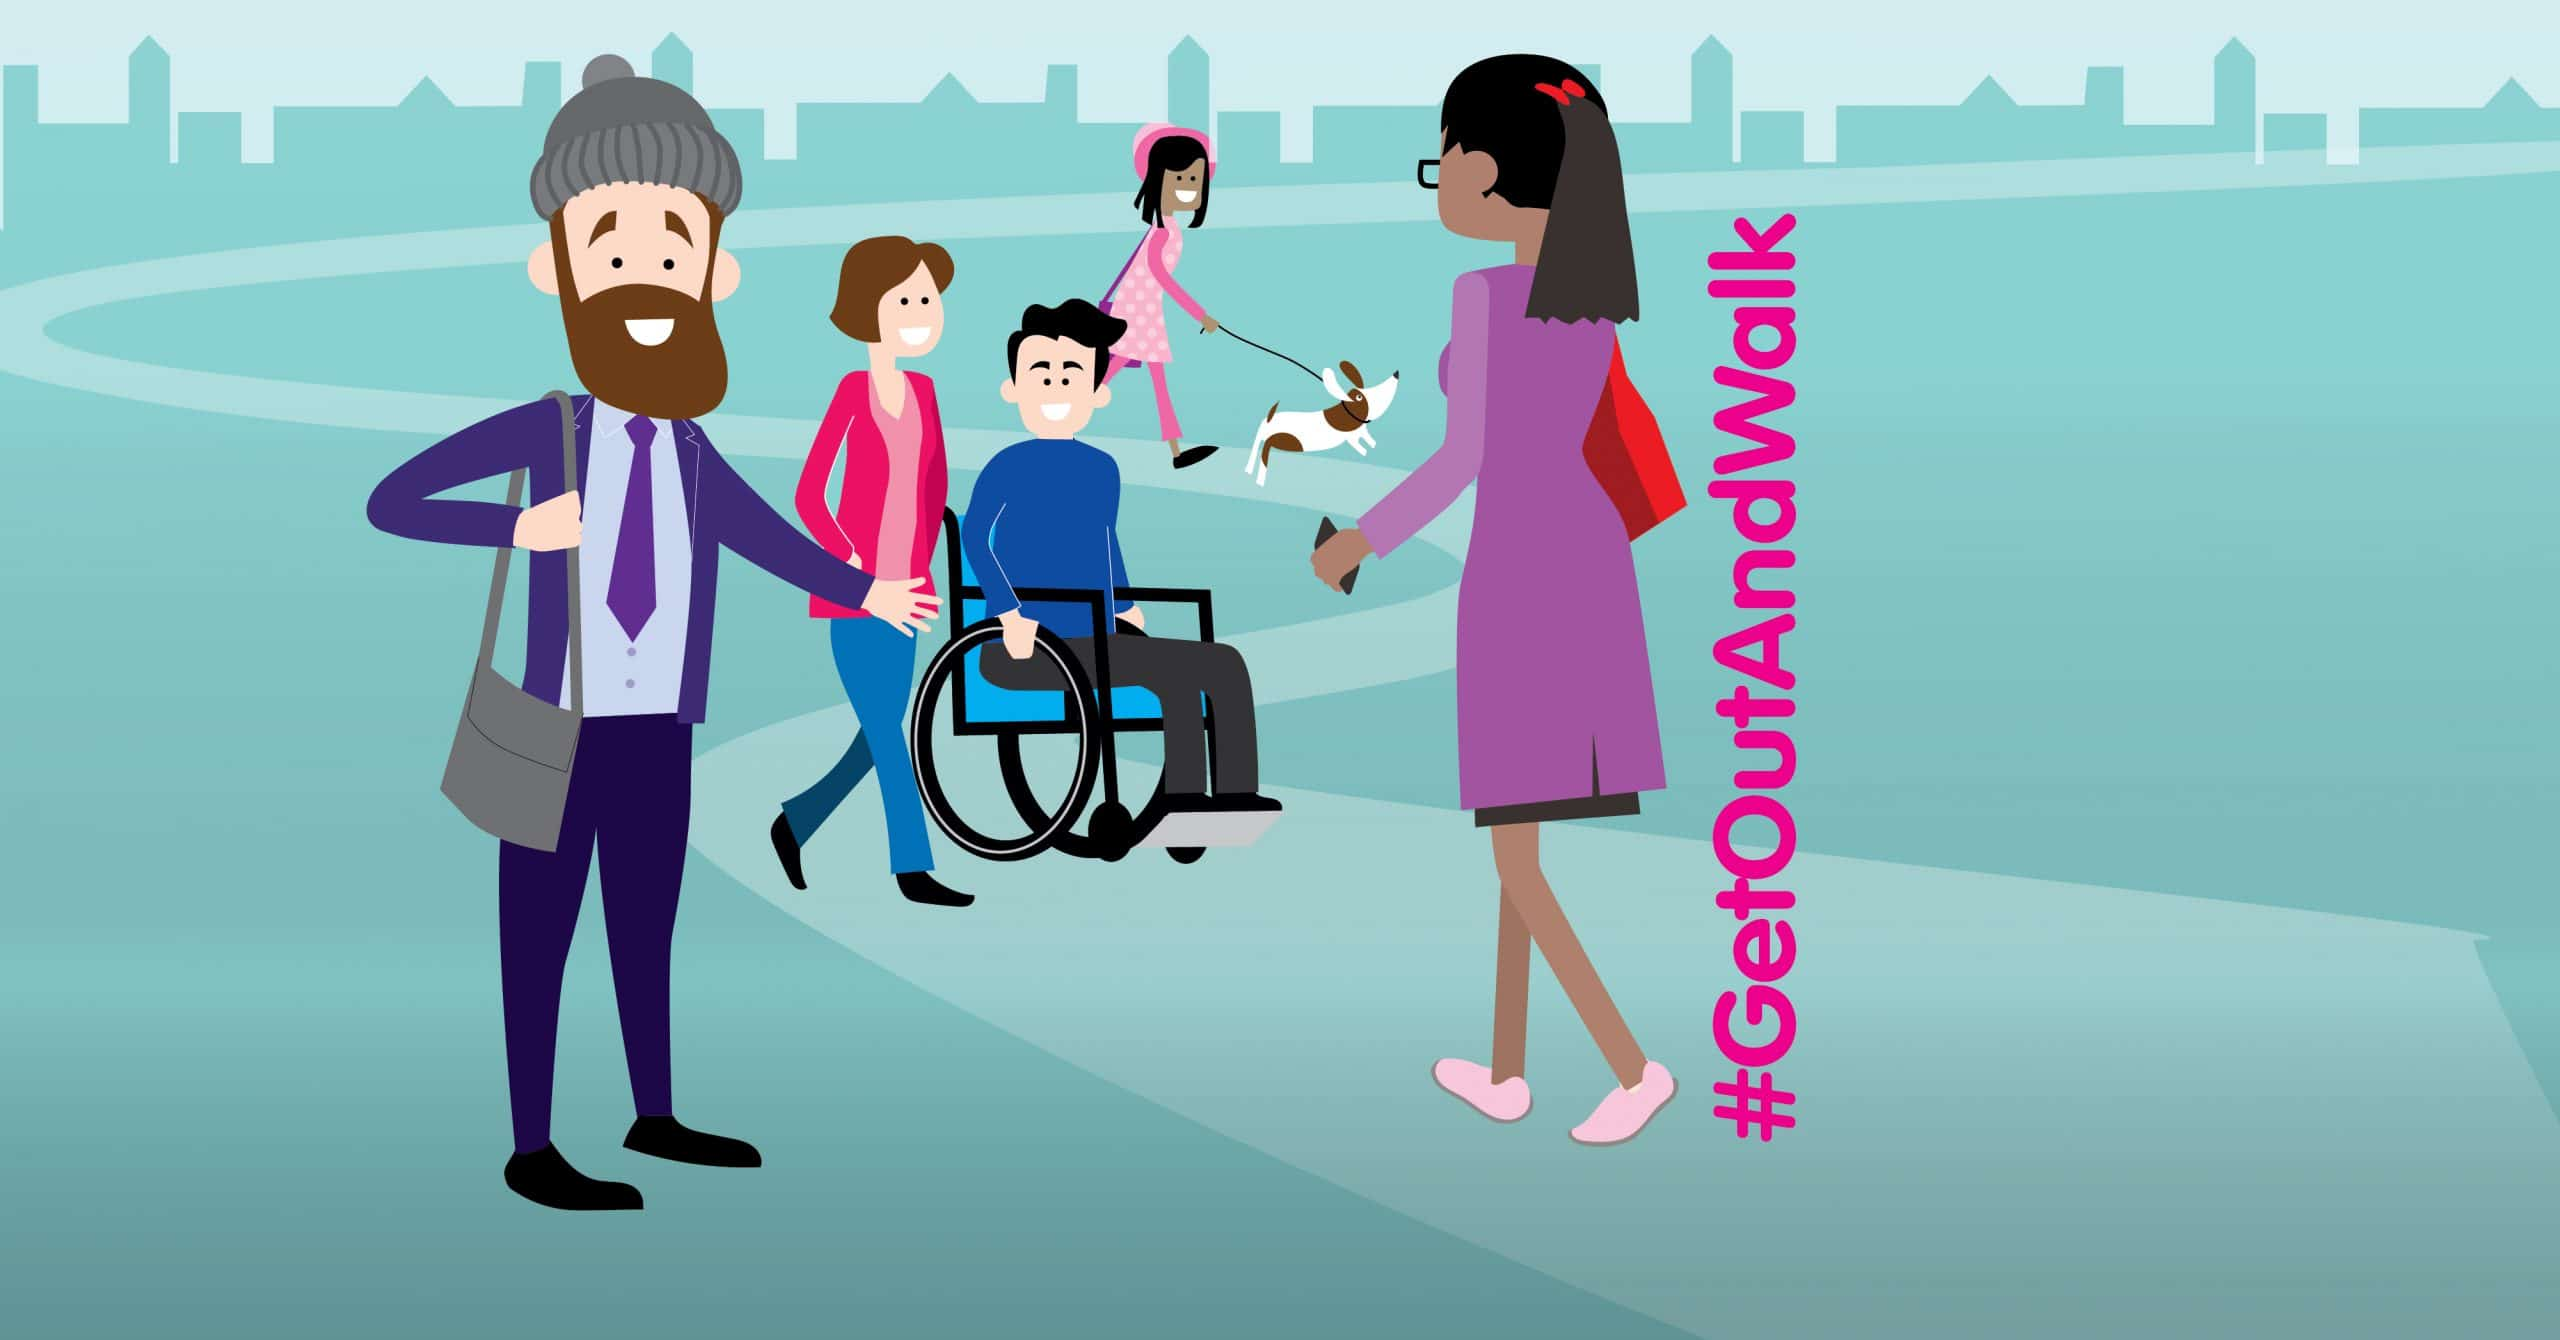 Illustration of people smiling whilst walking. There's a woman walking her dog, a man on a wheelchair with a woman walking beside him, a woman walking away holding a phone in her hand and a man standing facing us waving his hand. #GetOutAndWalk